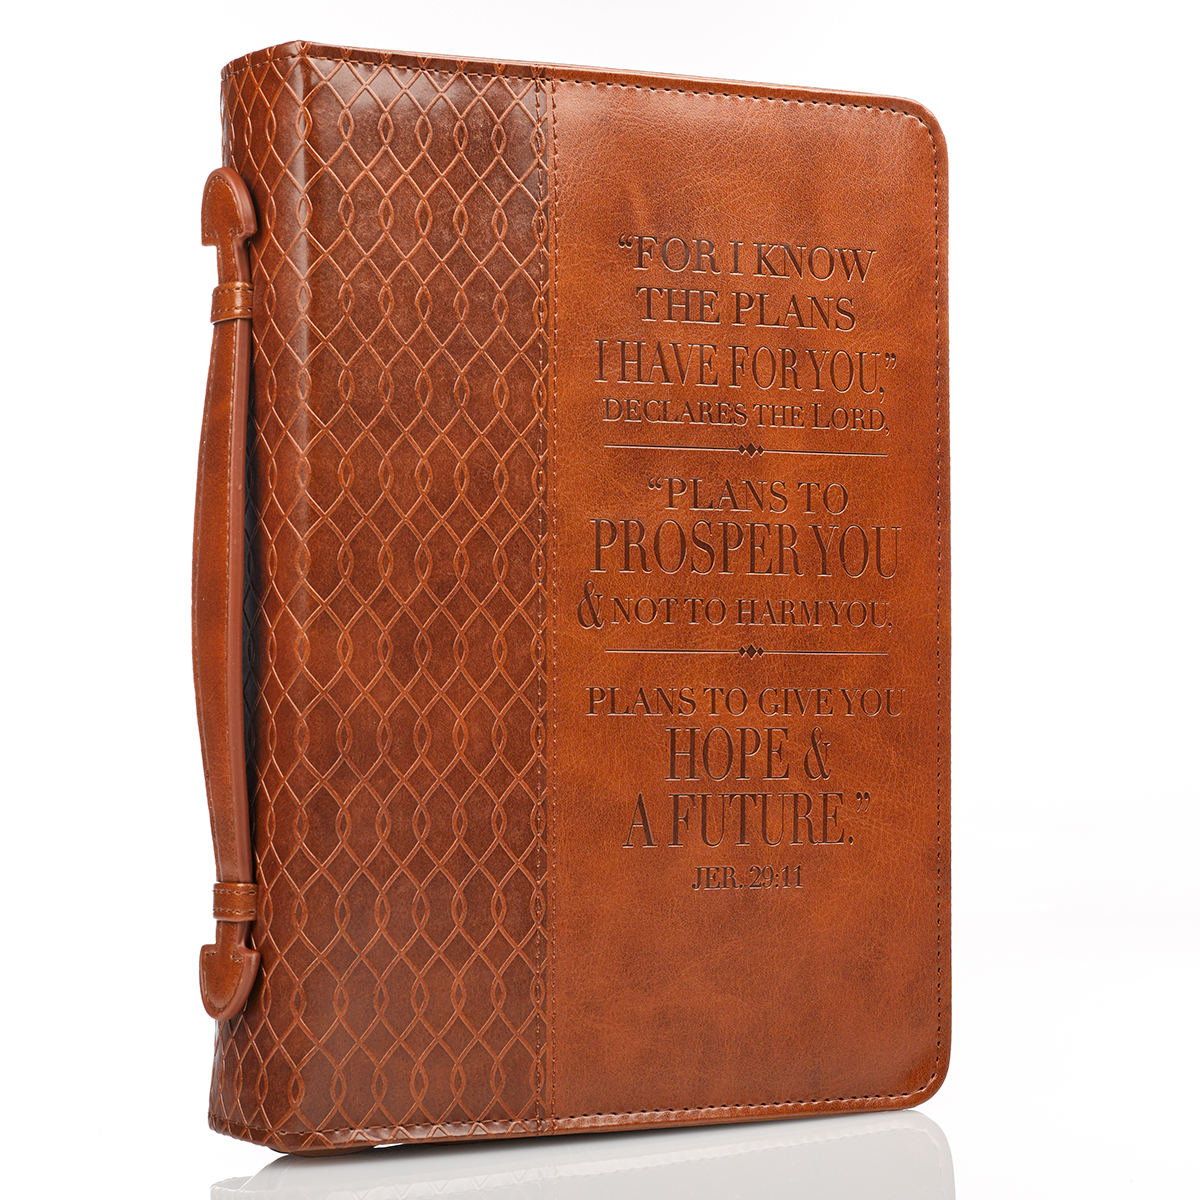 I-know-the-Plans-in-two-tone-Brown-Jeremiah-29-11-Bible-Cover-Size-Medium thumbnail 4